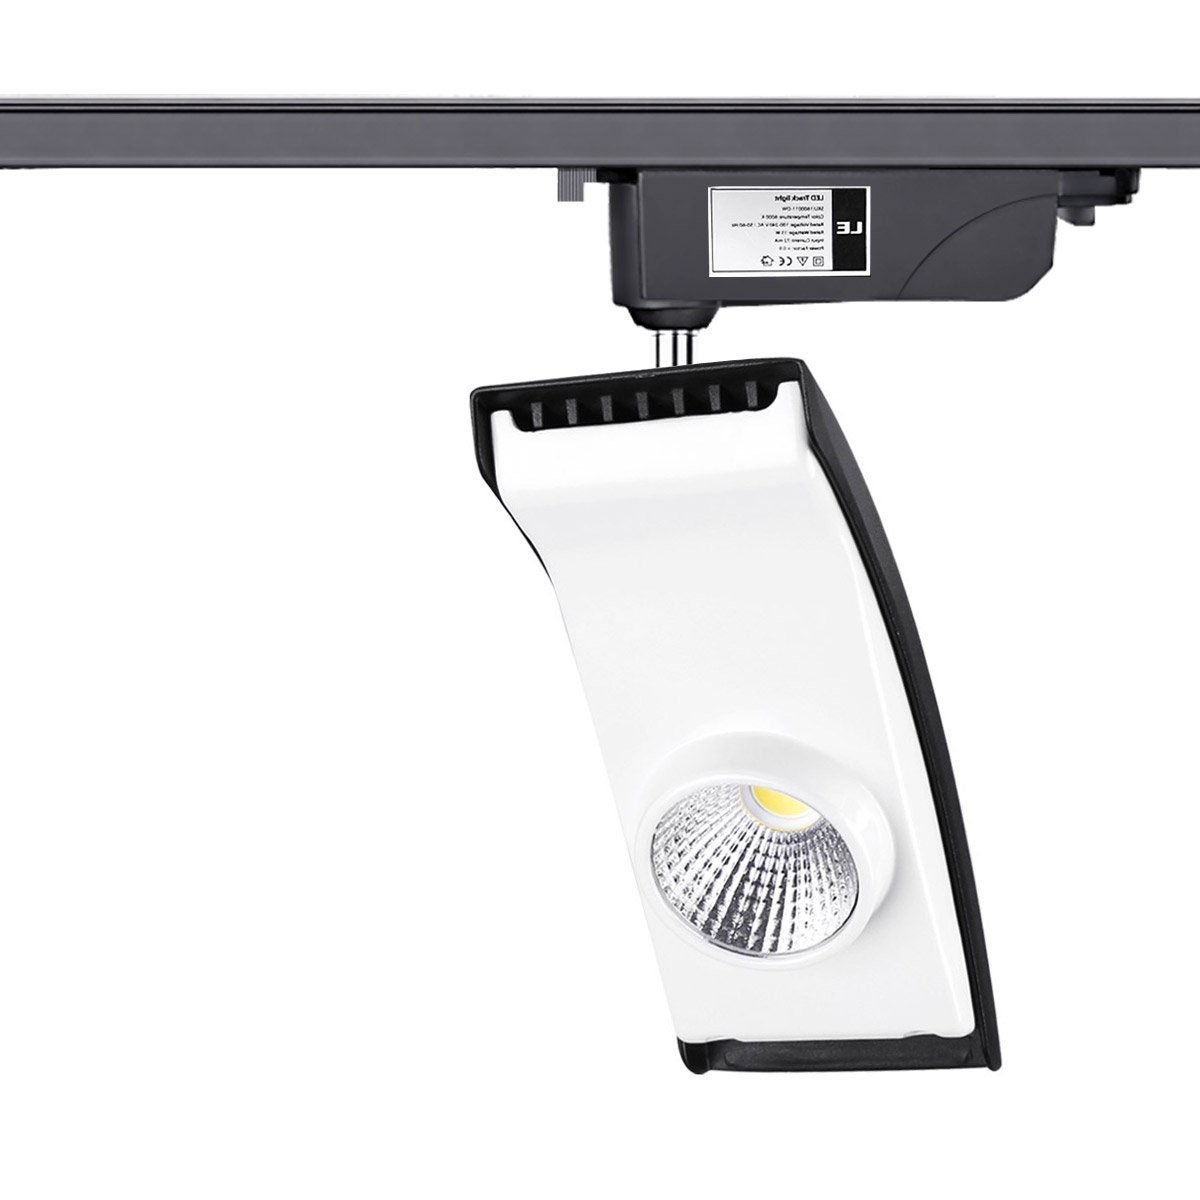 track lighting without wiring. LE 15W LED Track Lighting, 100W Halogen Bulbs Equivalent, 850lm, R9\u003e95, Warm White, 3000K, 30° Beam Angle, Spotlights, 3-wire Lights, Lighting Without Wiring O